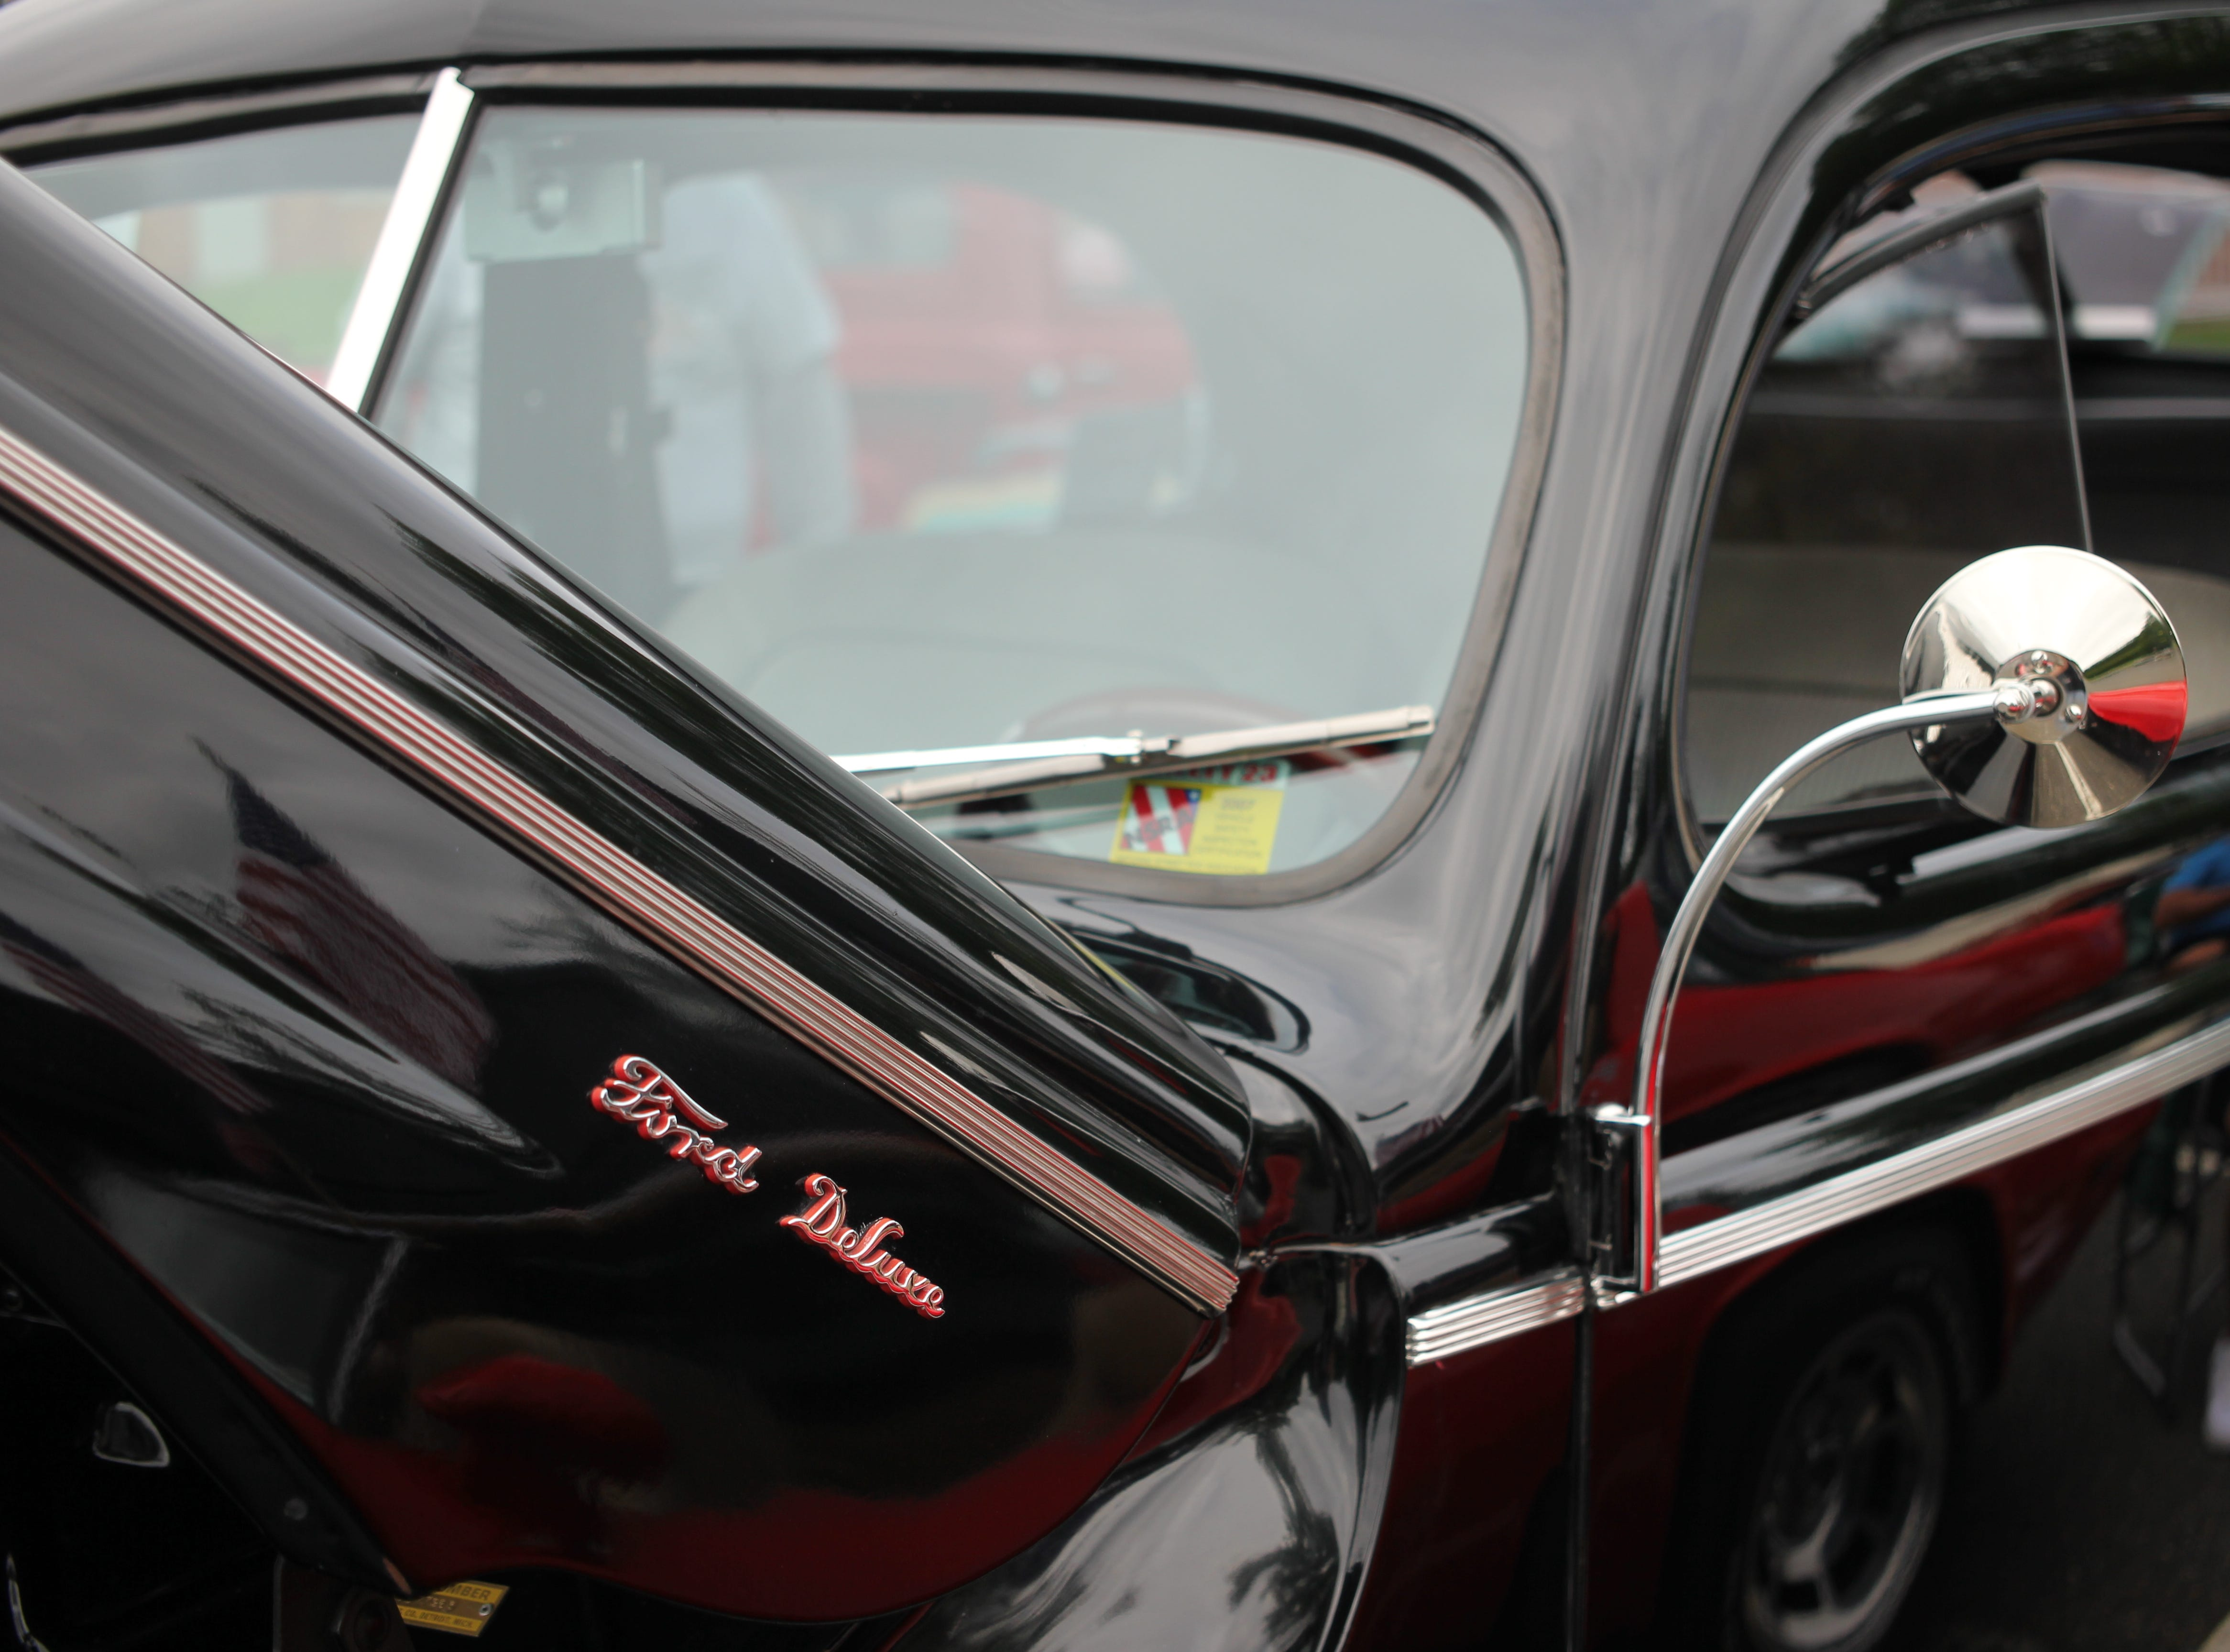 1940 Ford Tudor Deluxe, owned by Al DeLieto of Spotswood